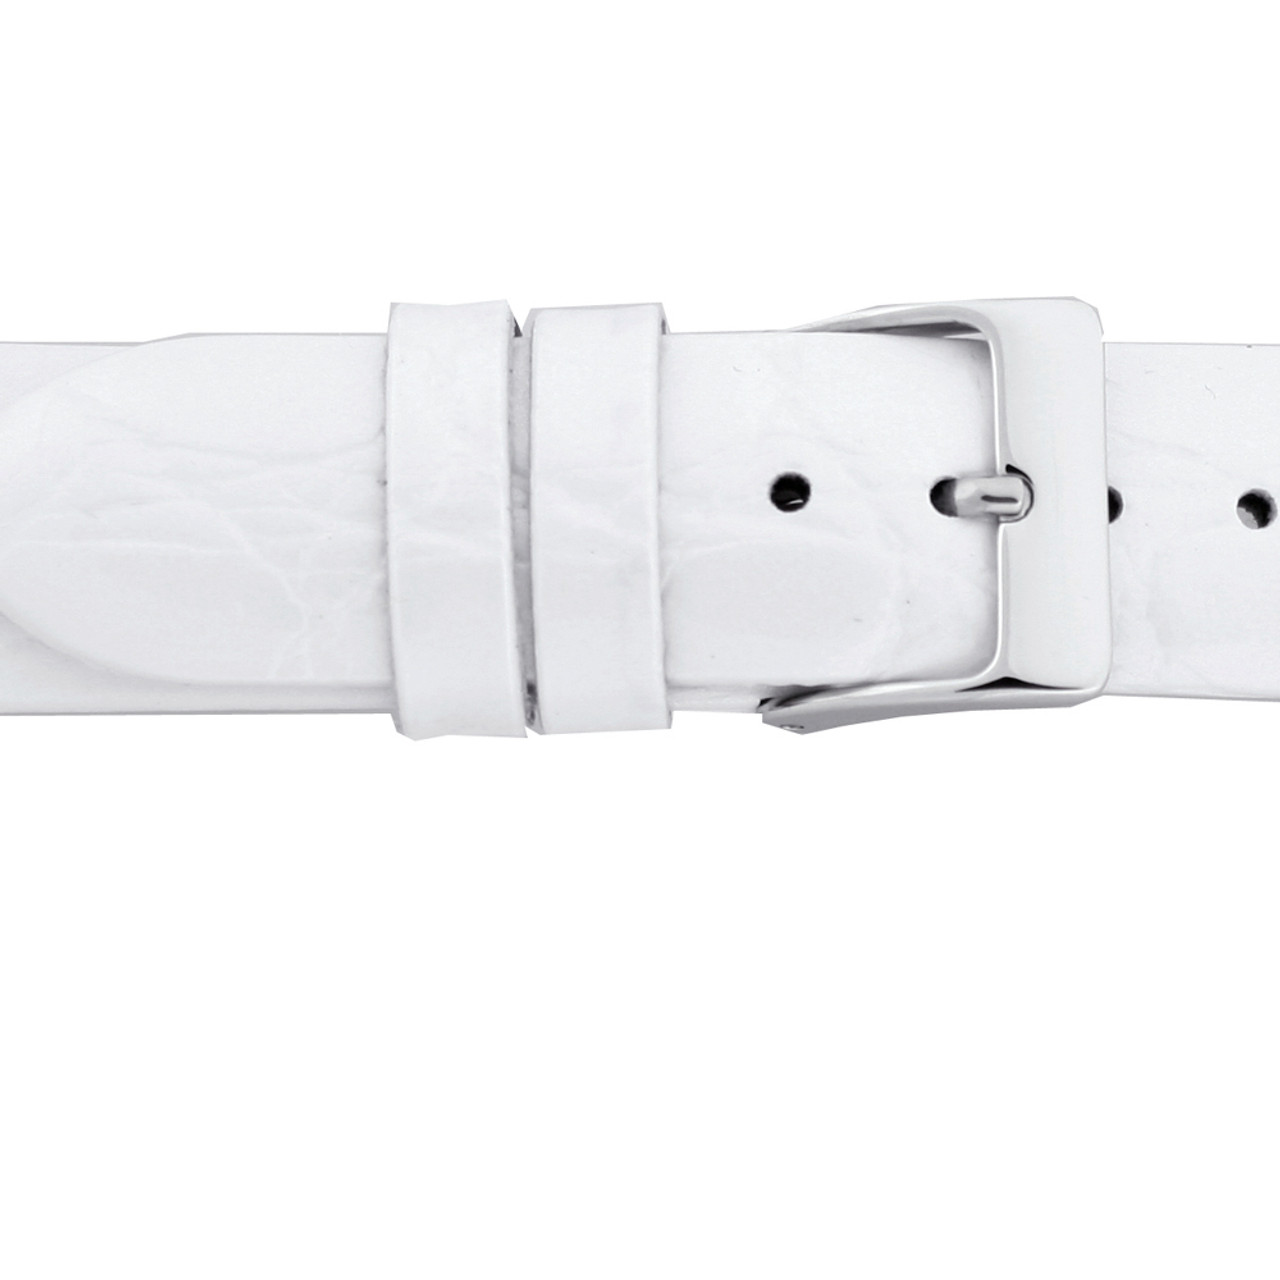 White Patent Leather Watch Band with Crocodile Grain Print by Tech Swiss - Buckle Top View